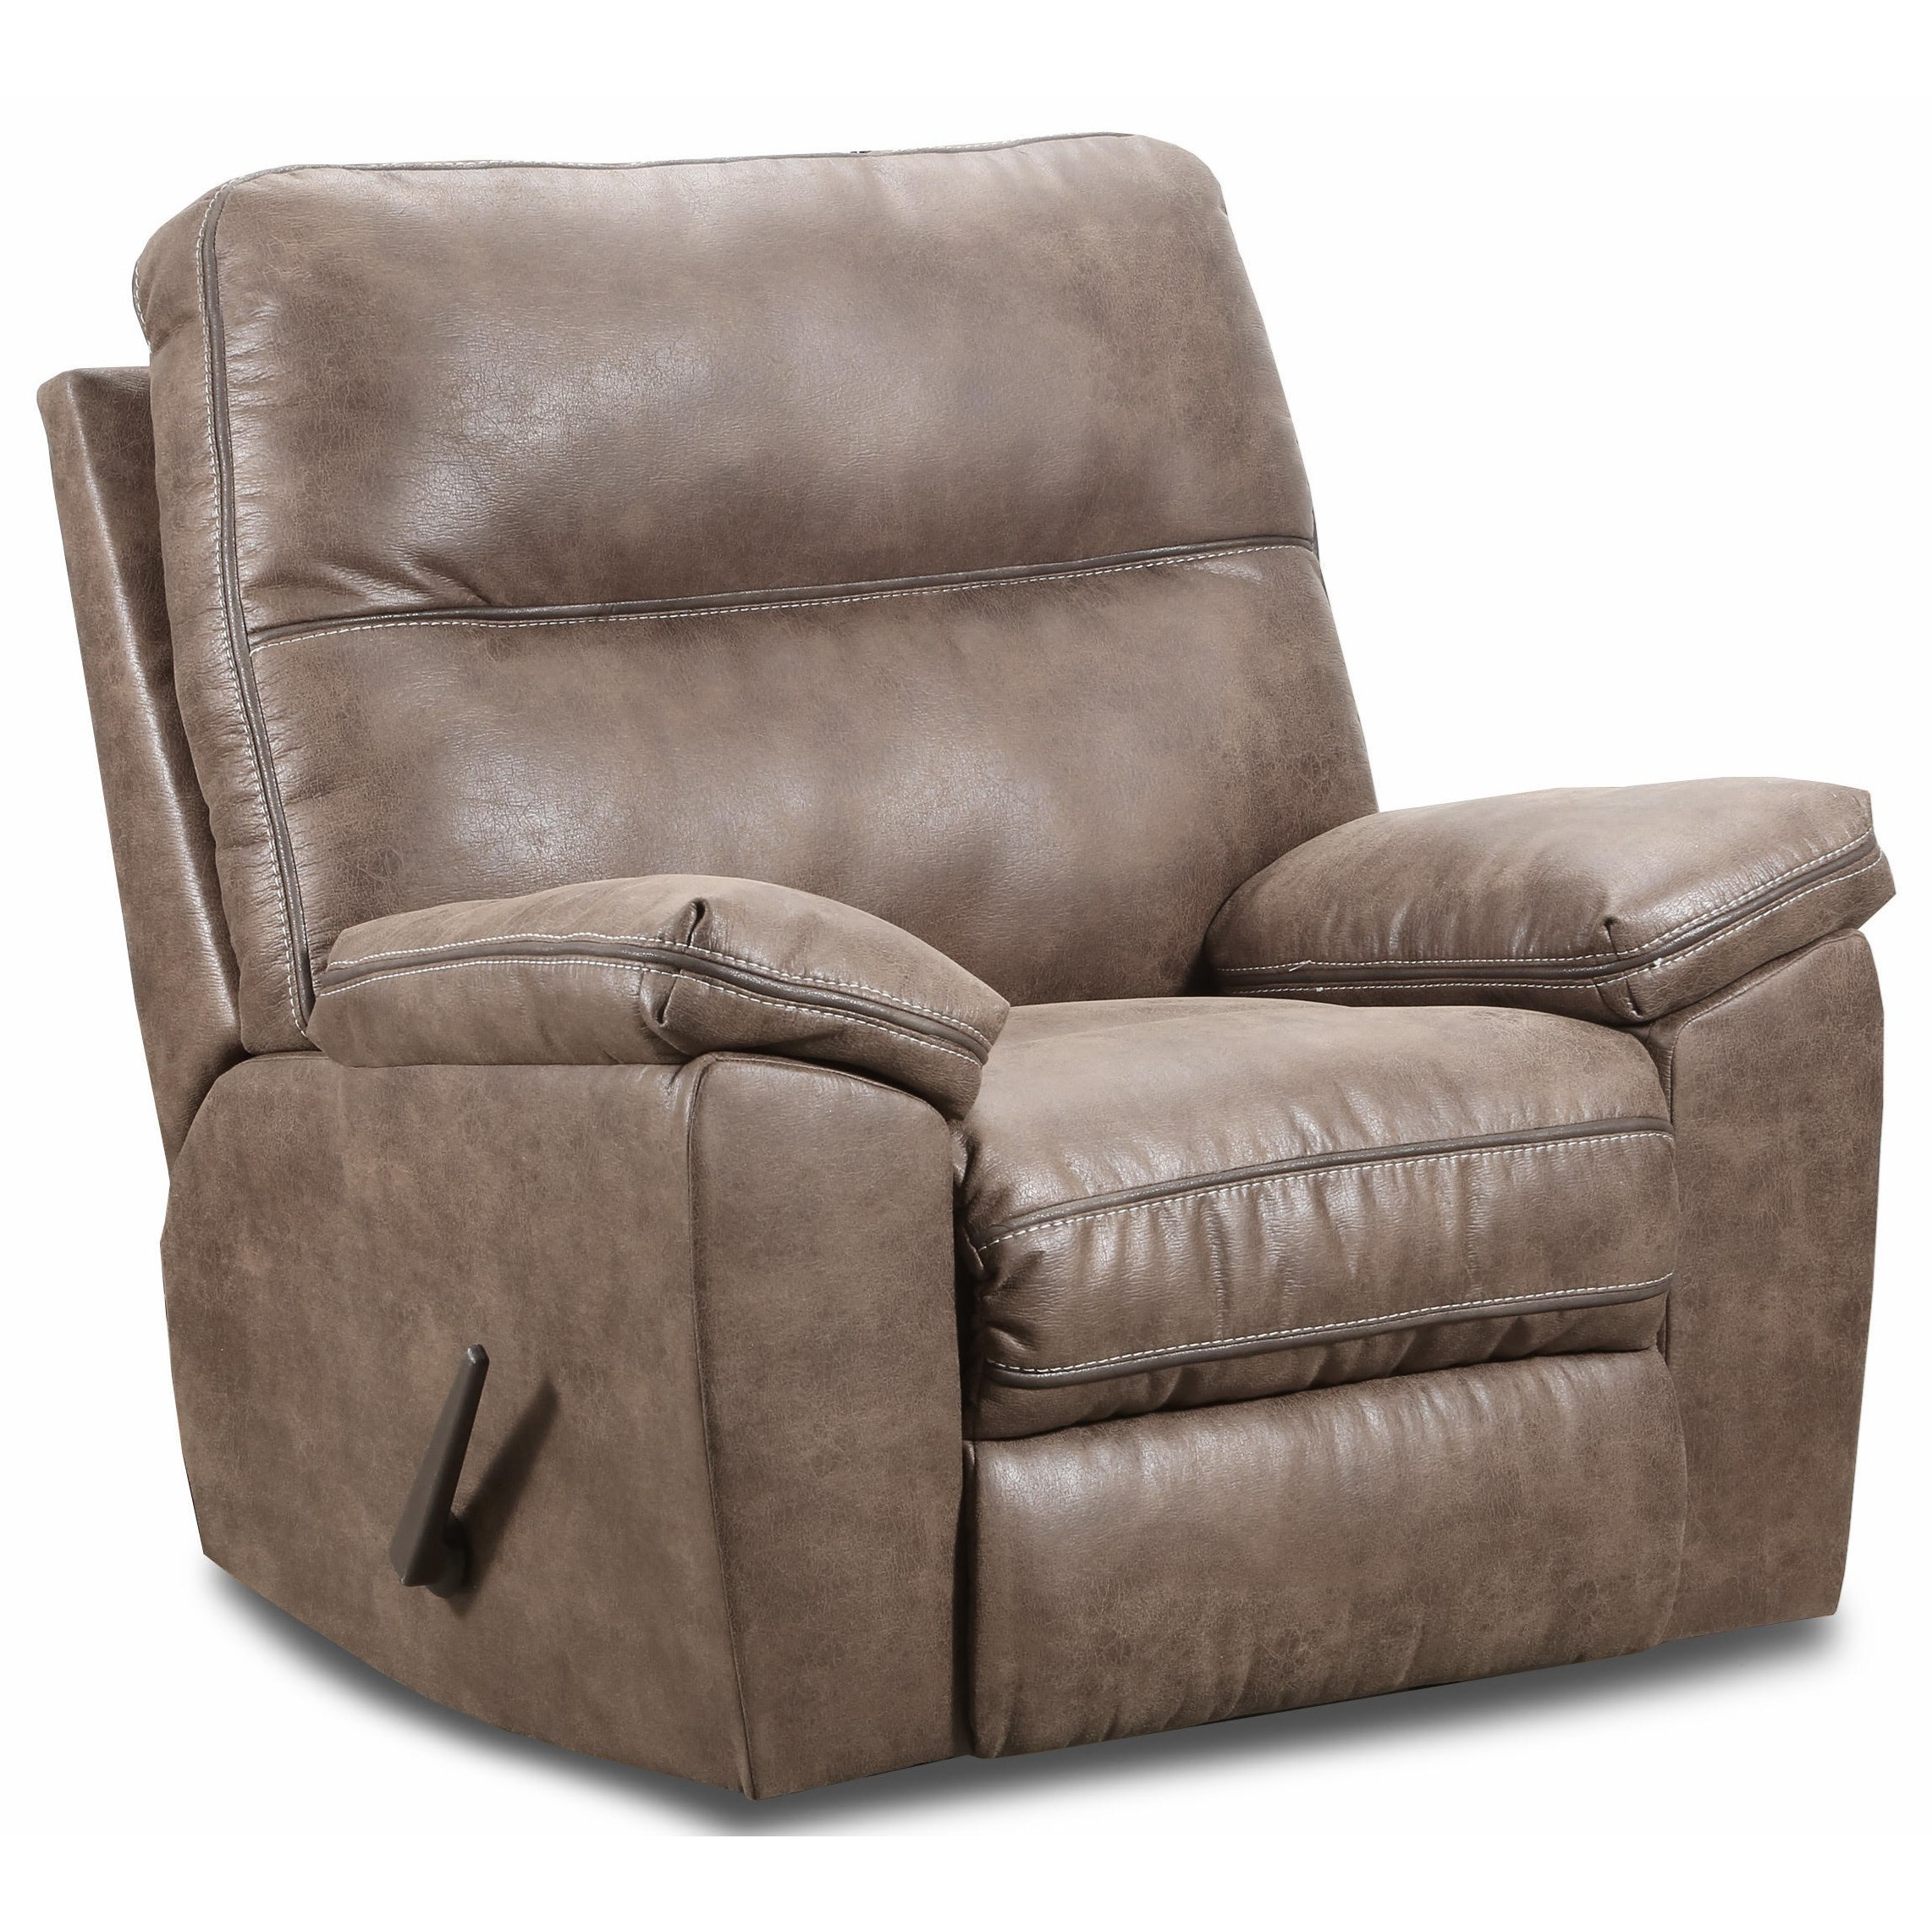 6000 Recliner by Peak Living at Prime Brothers Furniture